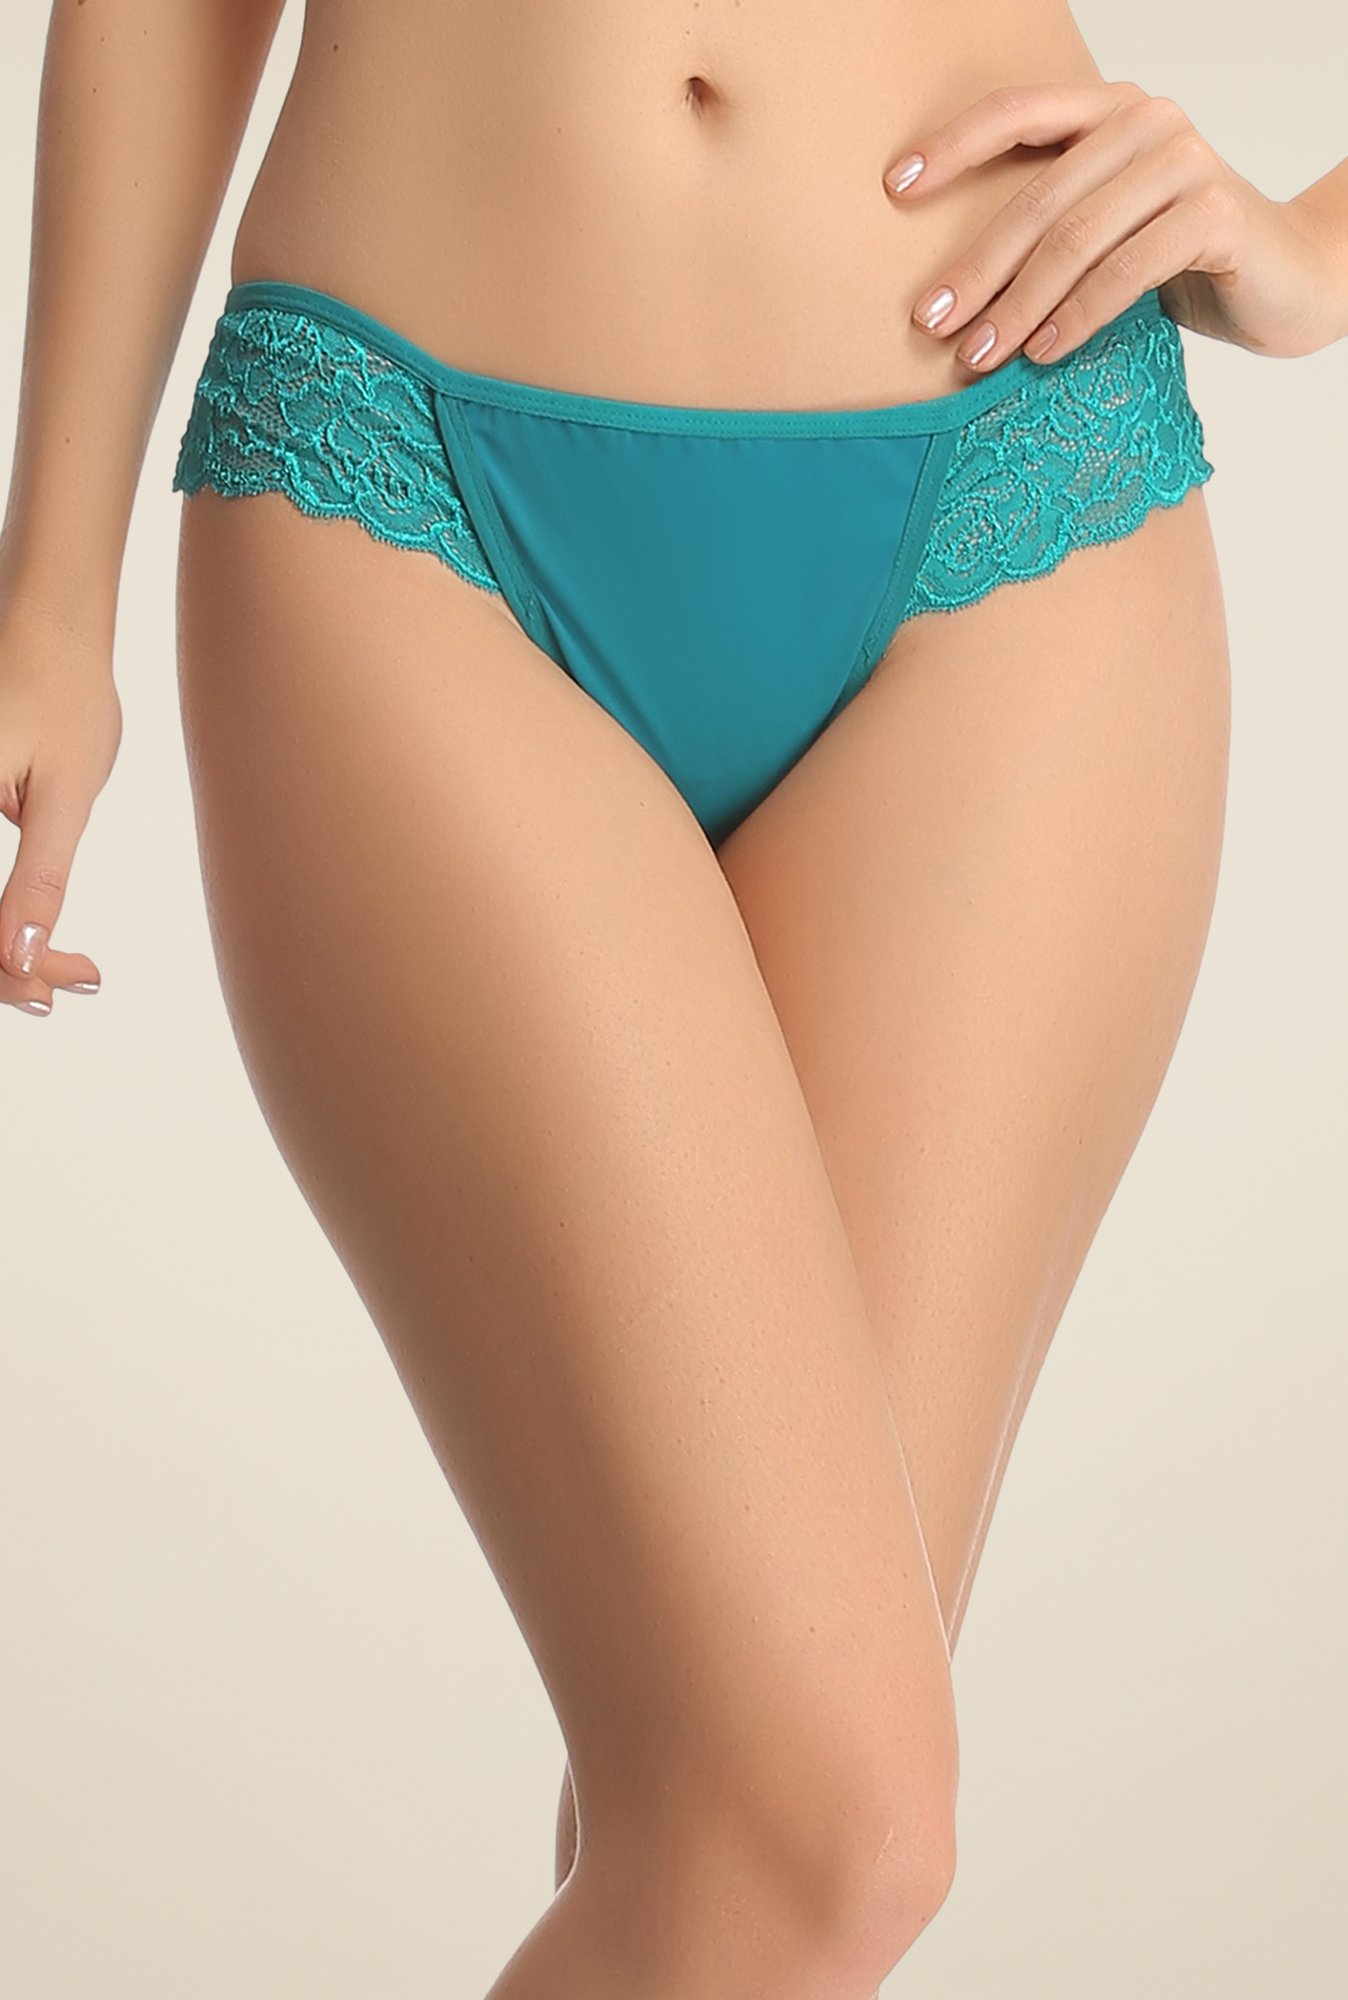 Clovia Teal Lace Brief